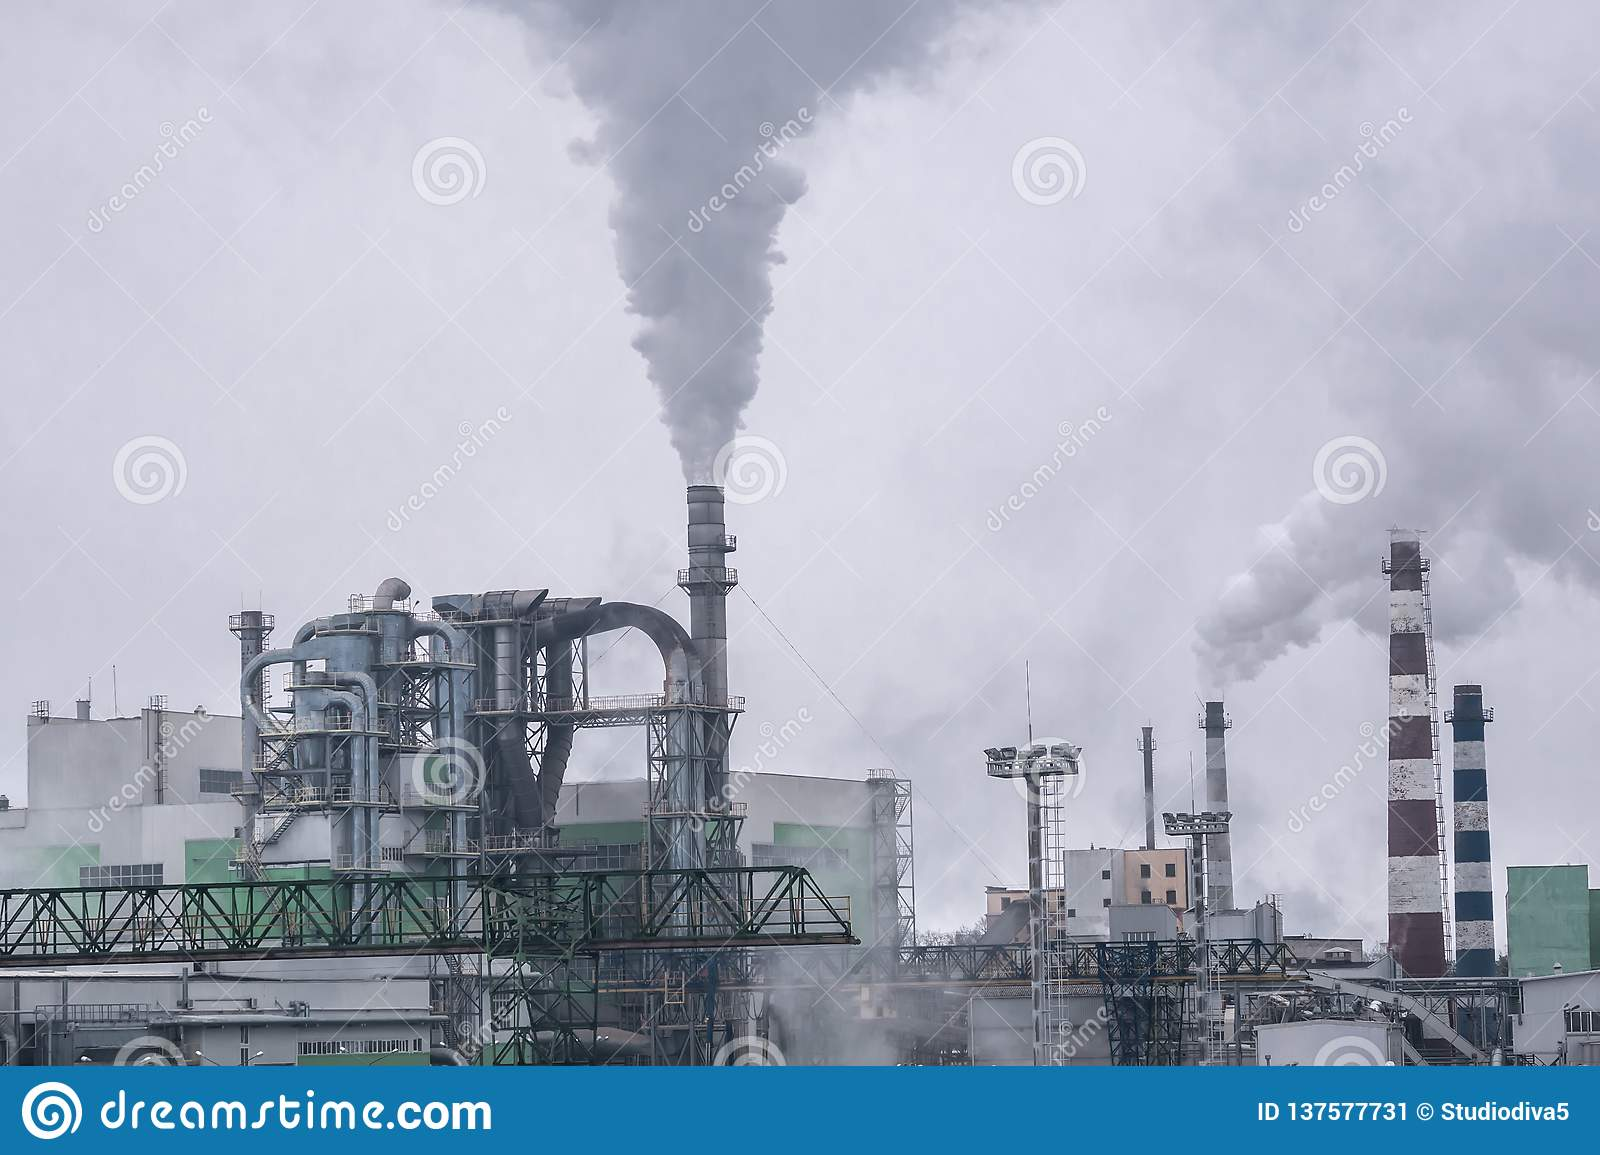 The factory releases a lot of smoke and smog into the sky